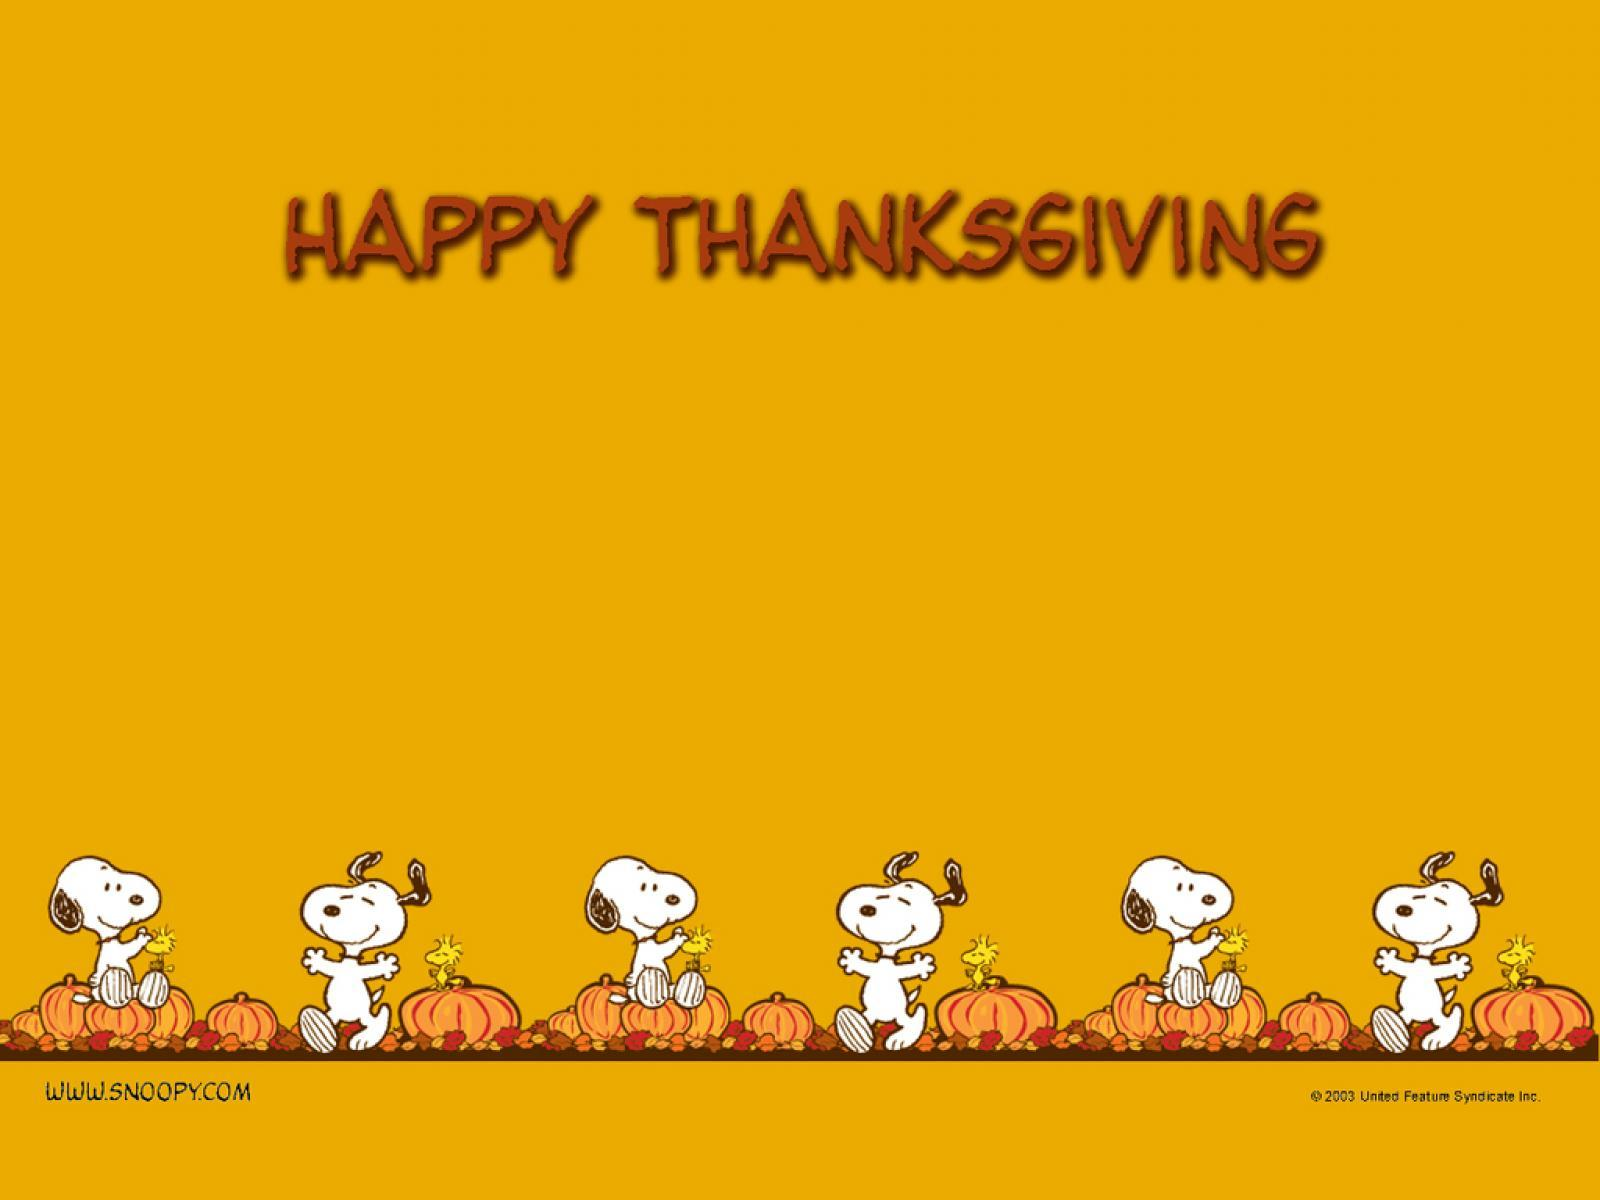 Wallpapers For > Funny Thanksgiving Wallpapers Desktop